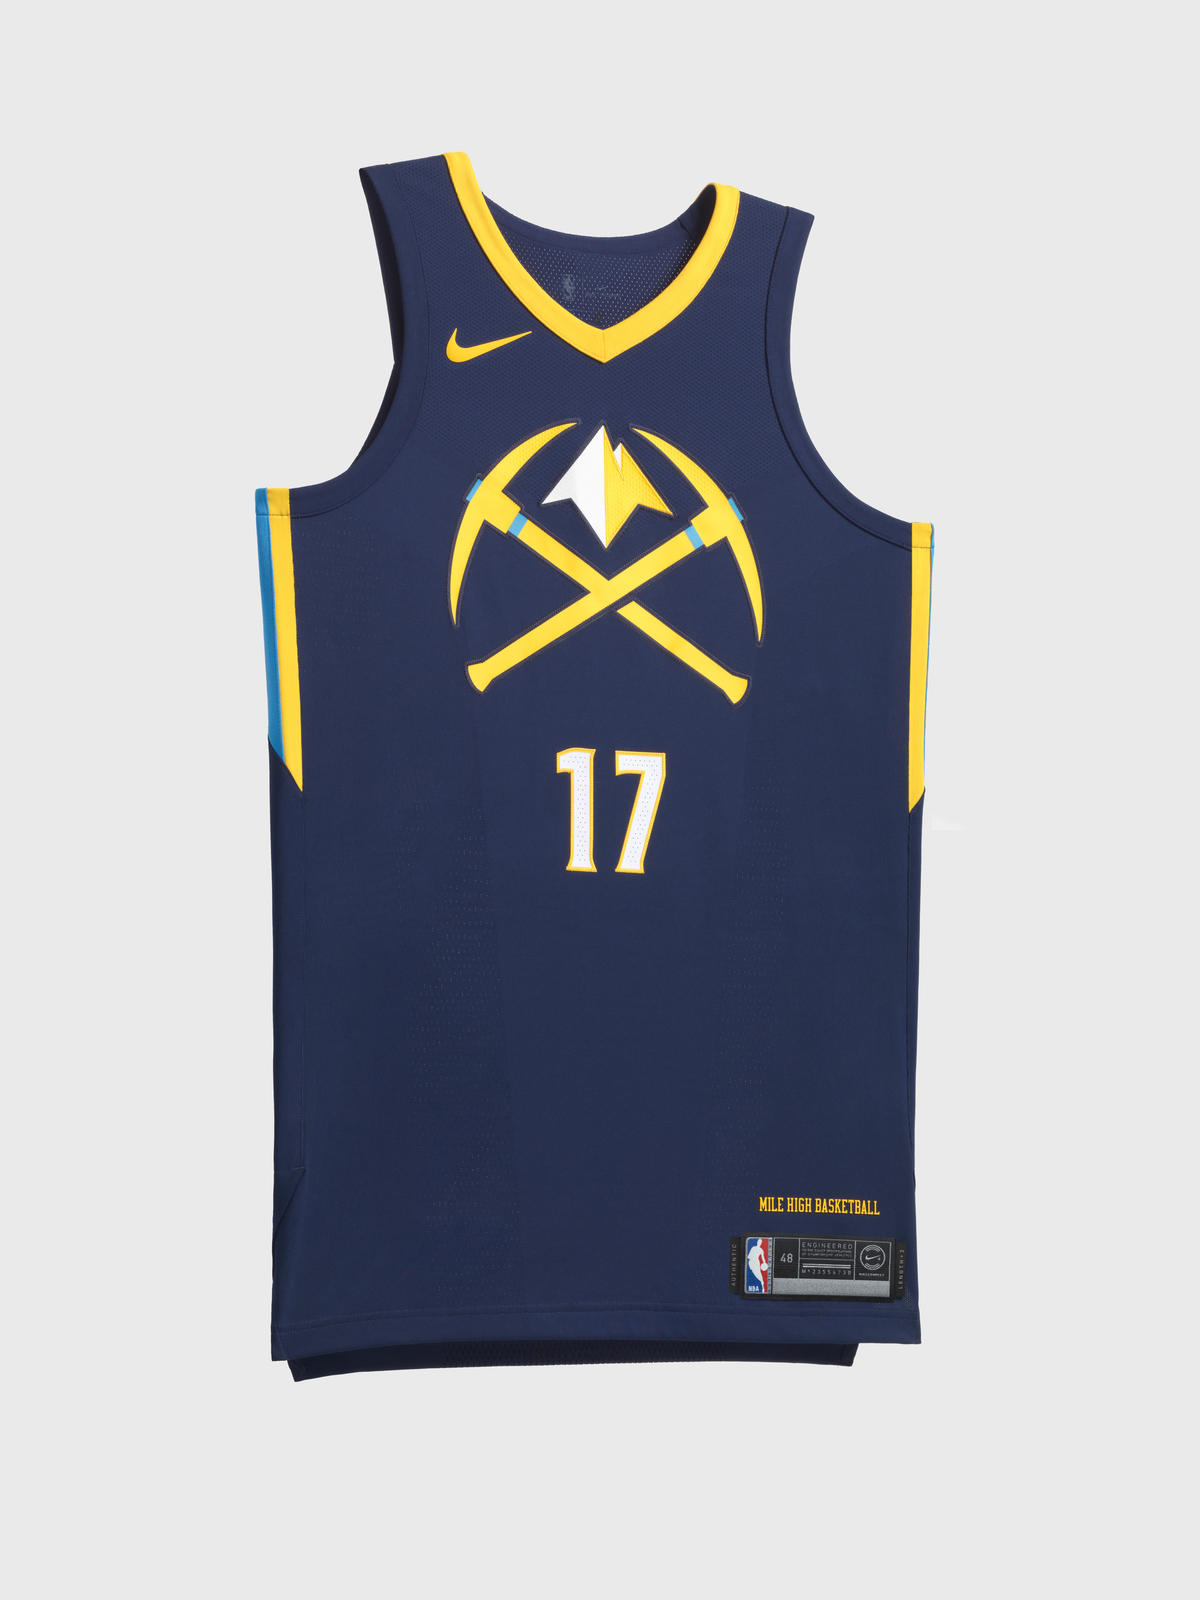 Denver Nuggets City Edition jersey